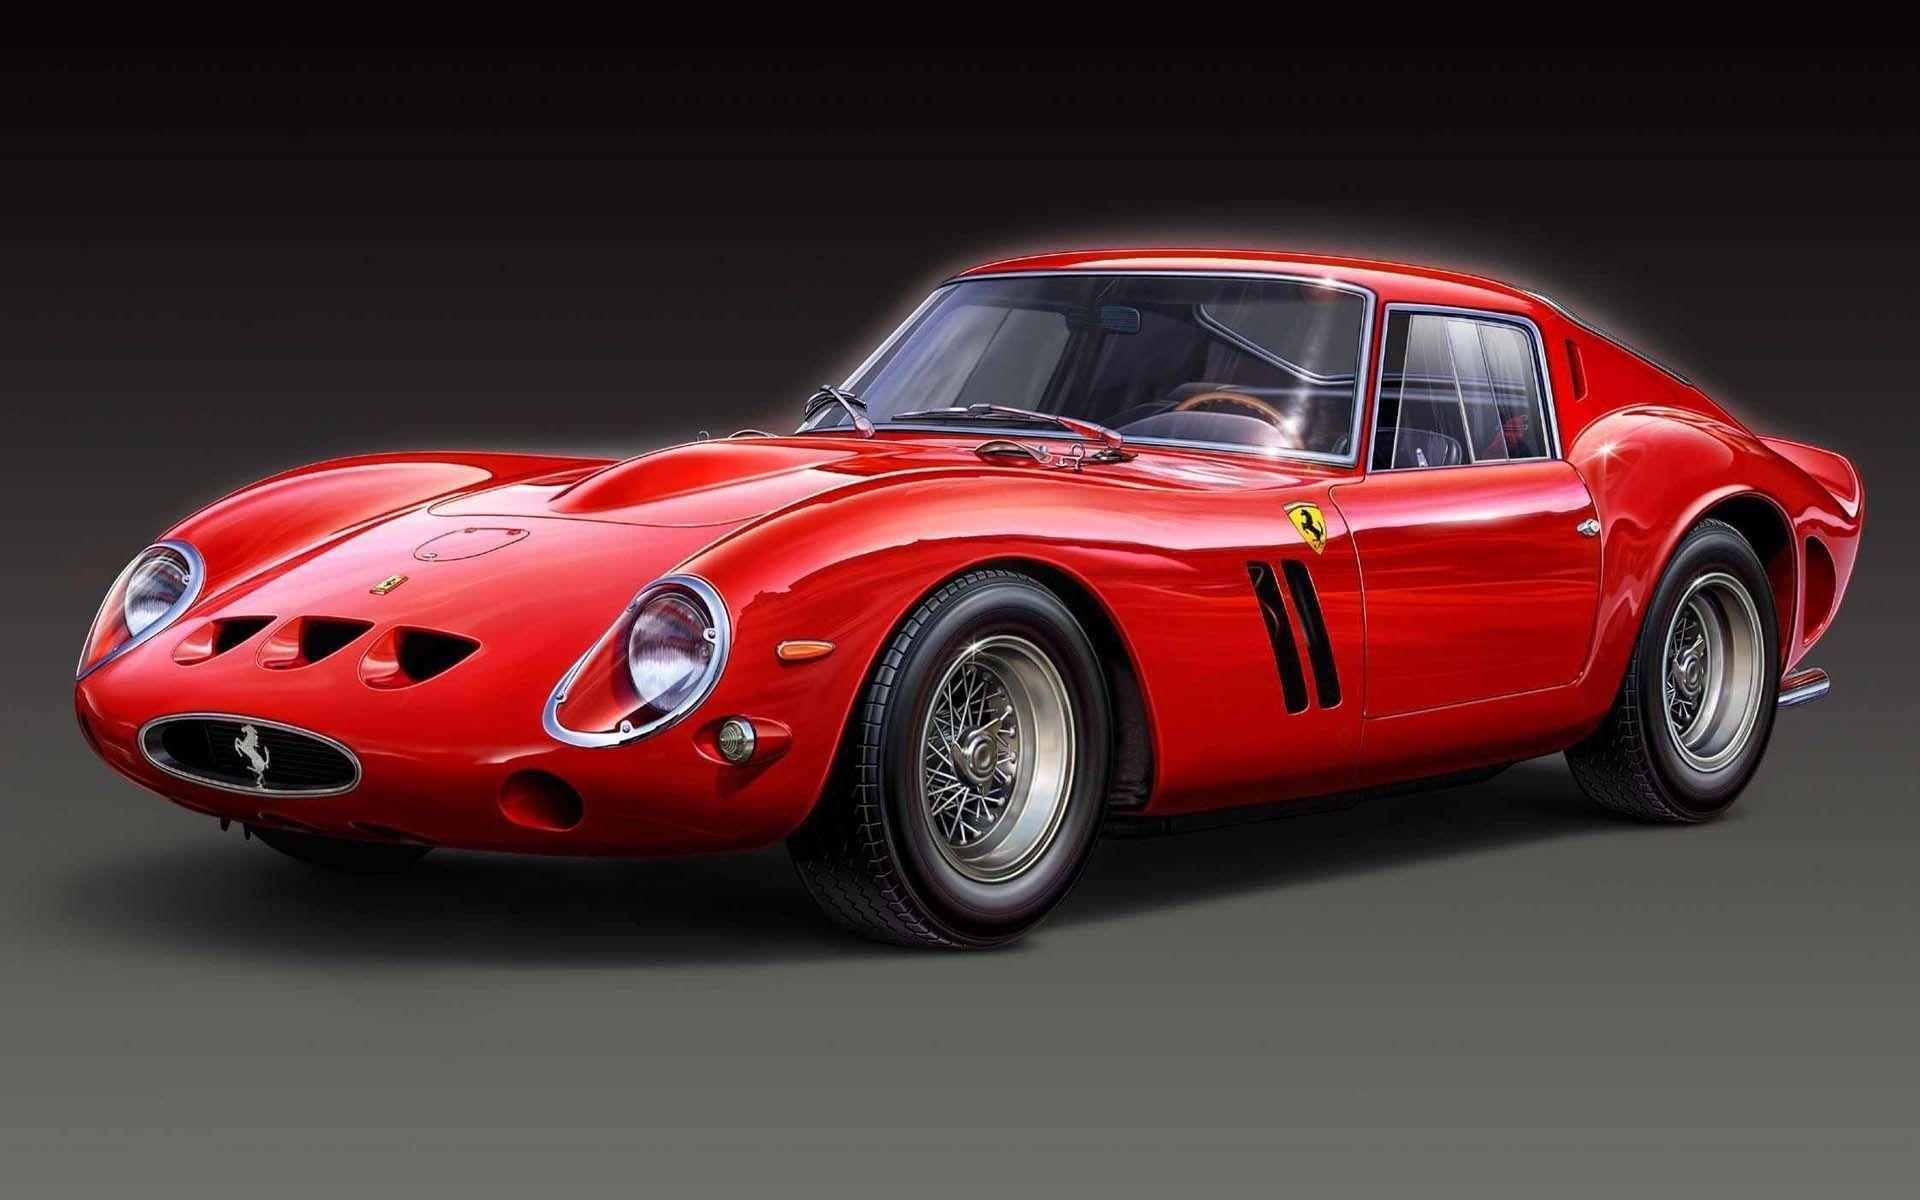 Ferrari Wallpapers Hd Pictures 4 HD Wallpapers